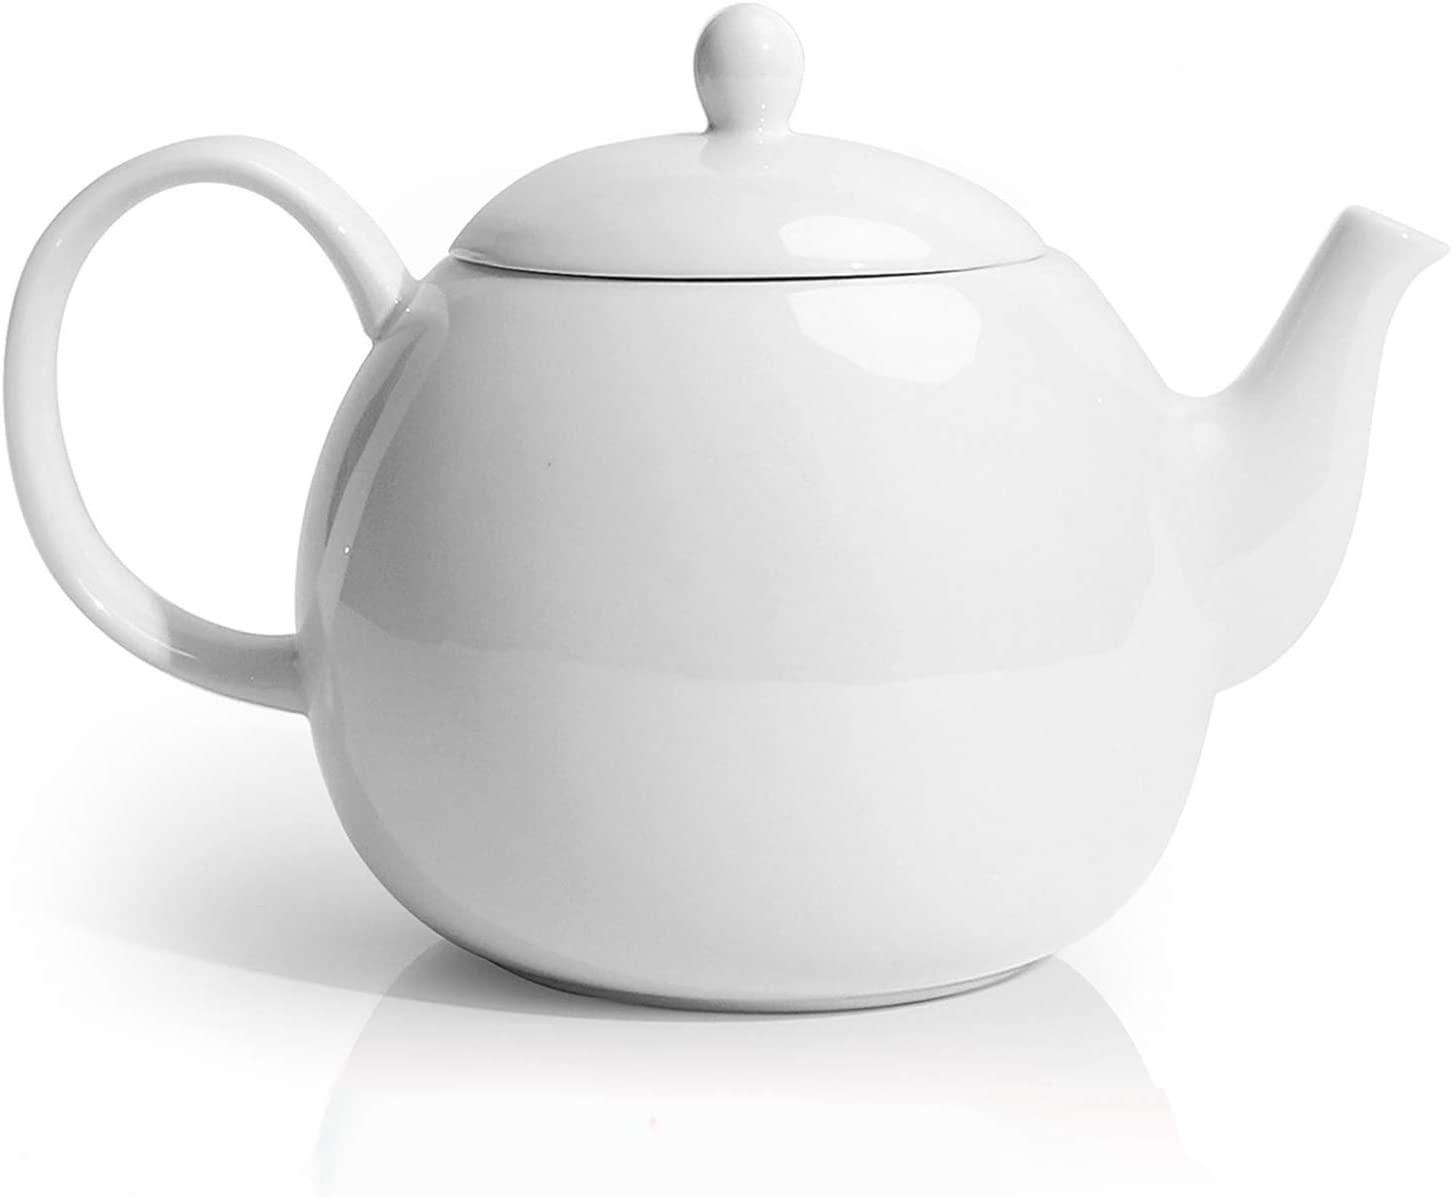 Sweese 220.101 Porcelain Teapot, 40 Ounce Tea Pot - Large Enough for 5 Cups, White